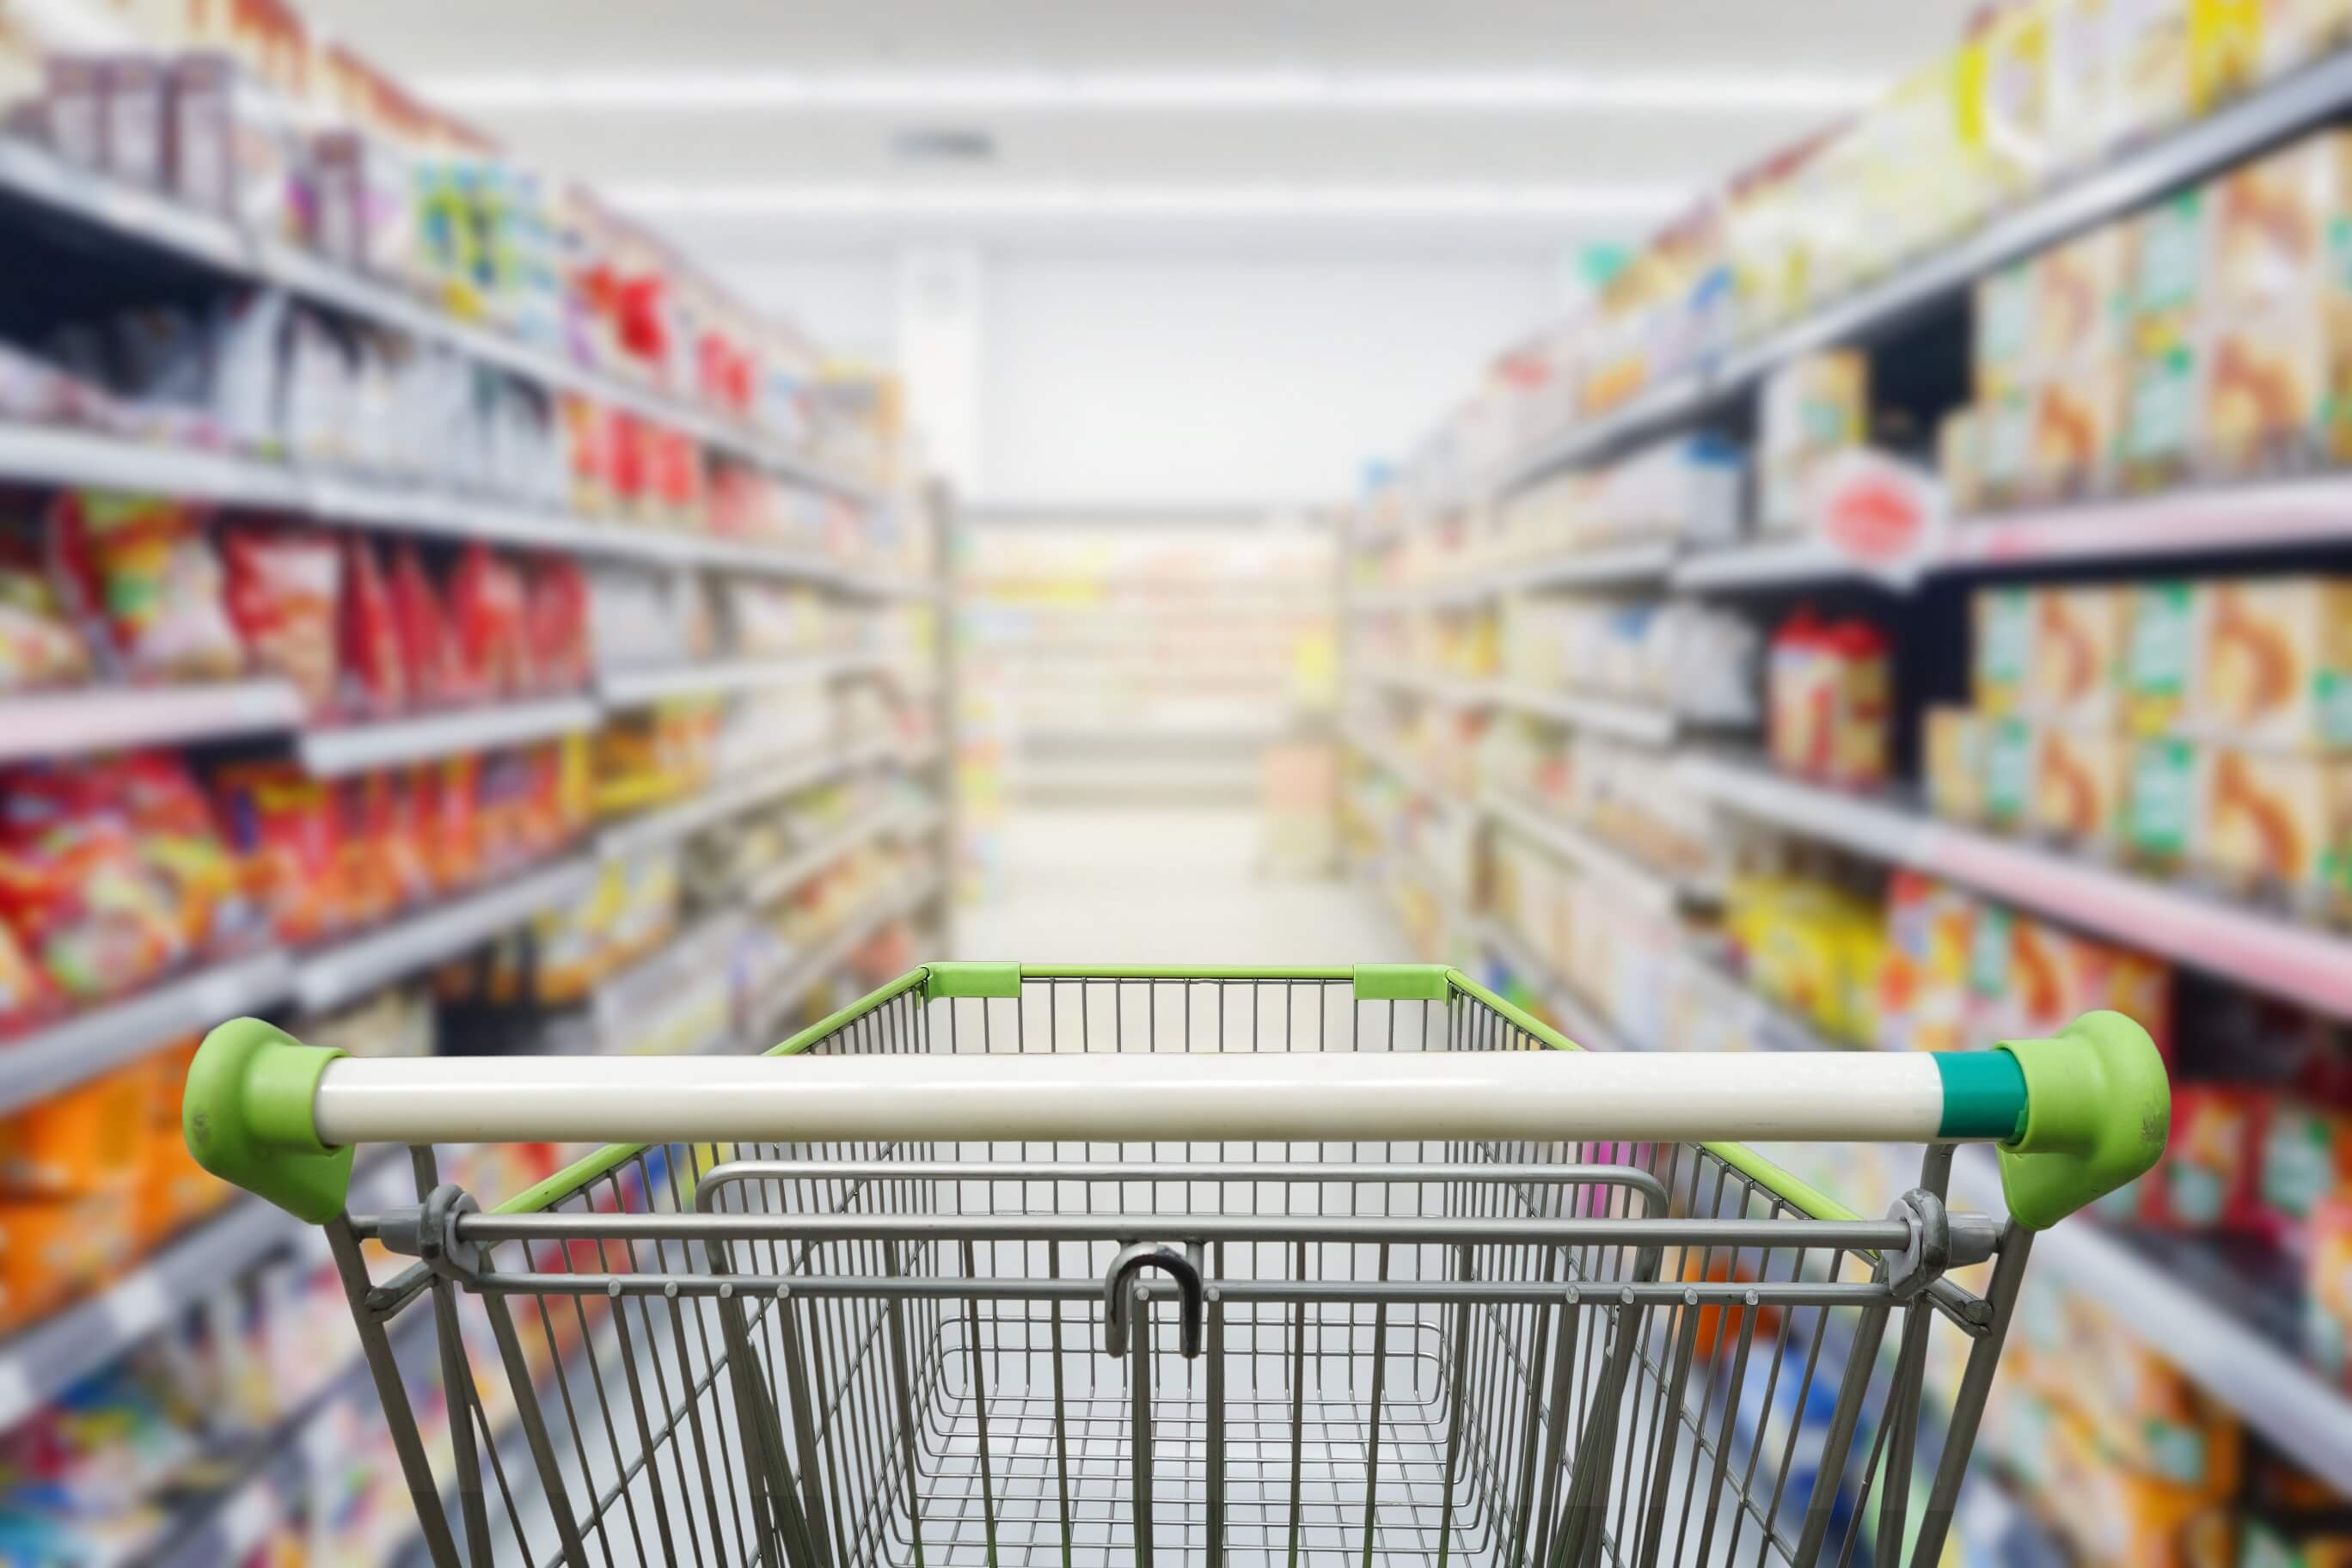 Empty grocery cart in an aisle of processed foods